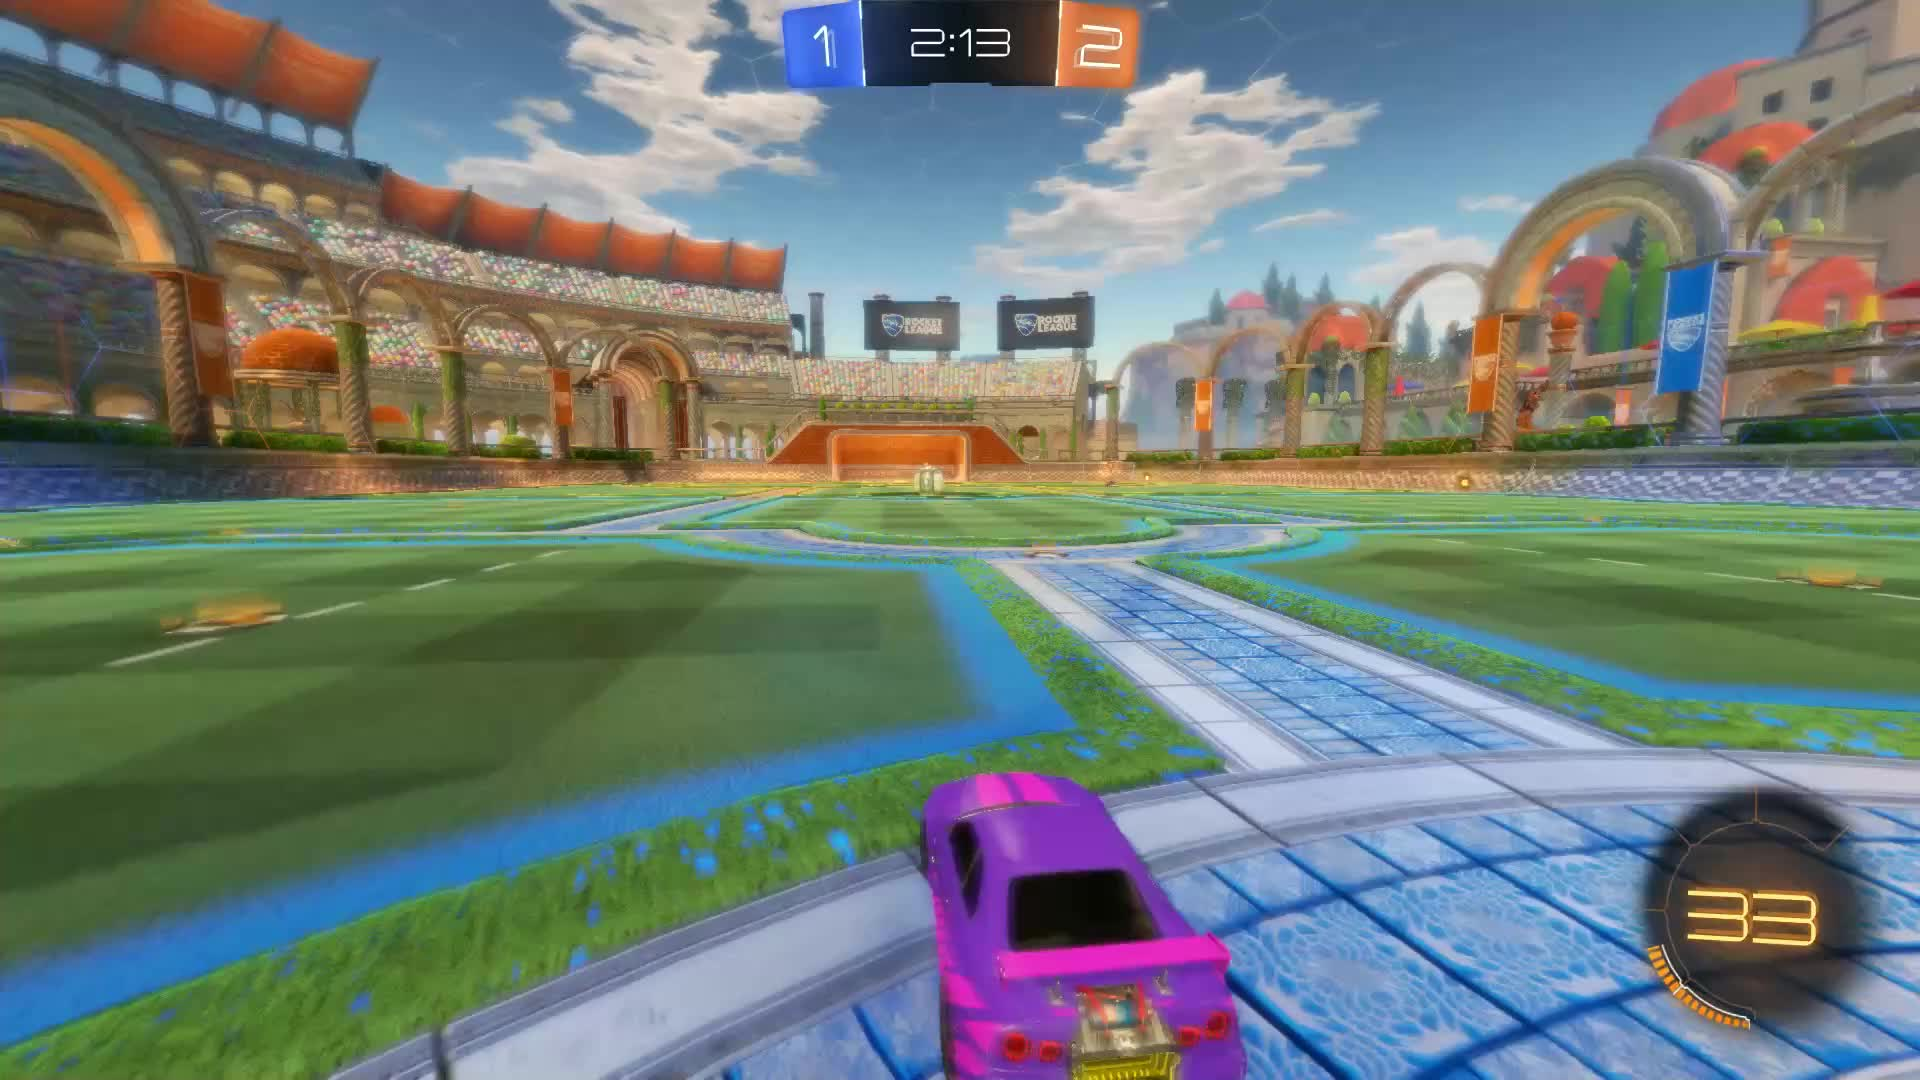 Gif Your Game, GifYourGame, Goal, Rocket League, RocketLeague, earray, Goal 4: earray GIFs